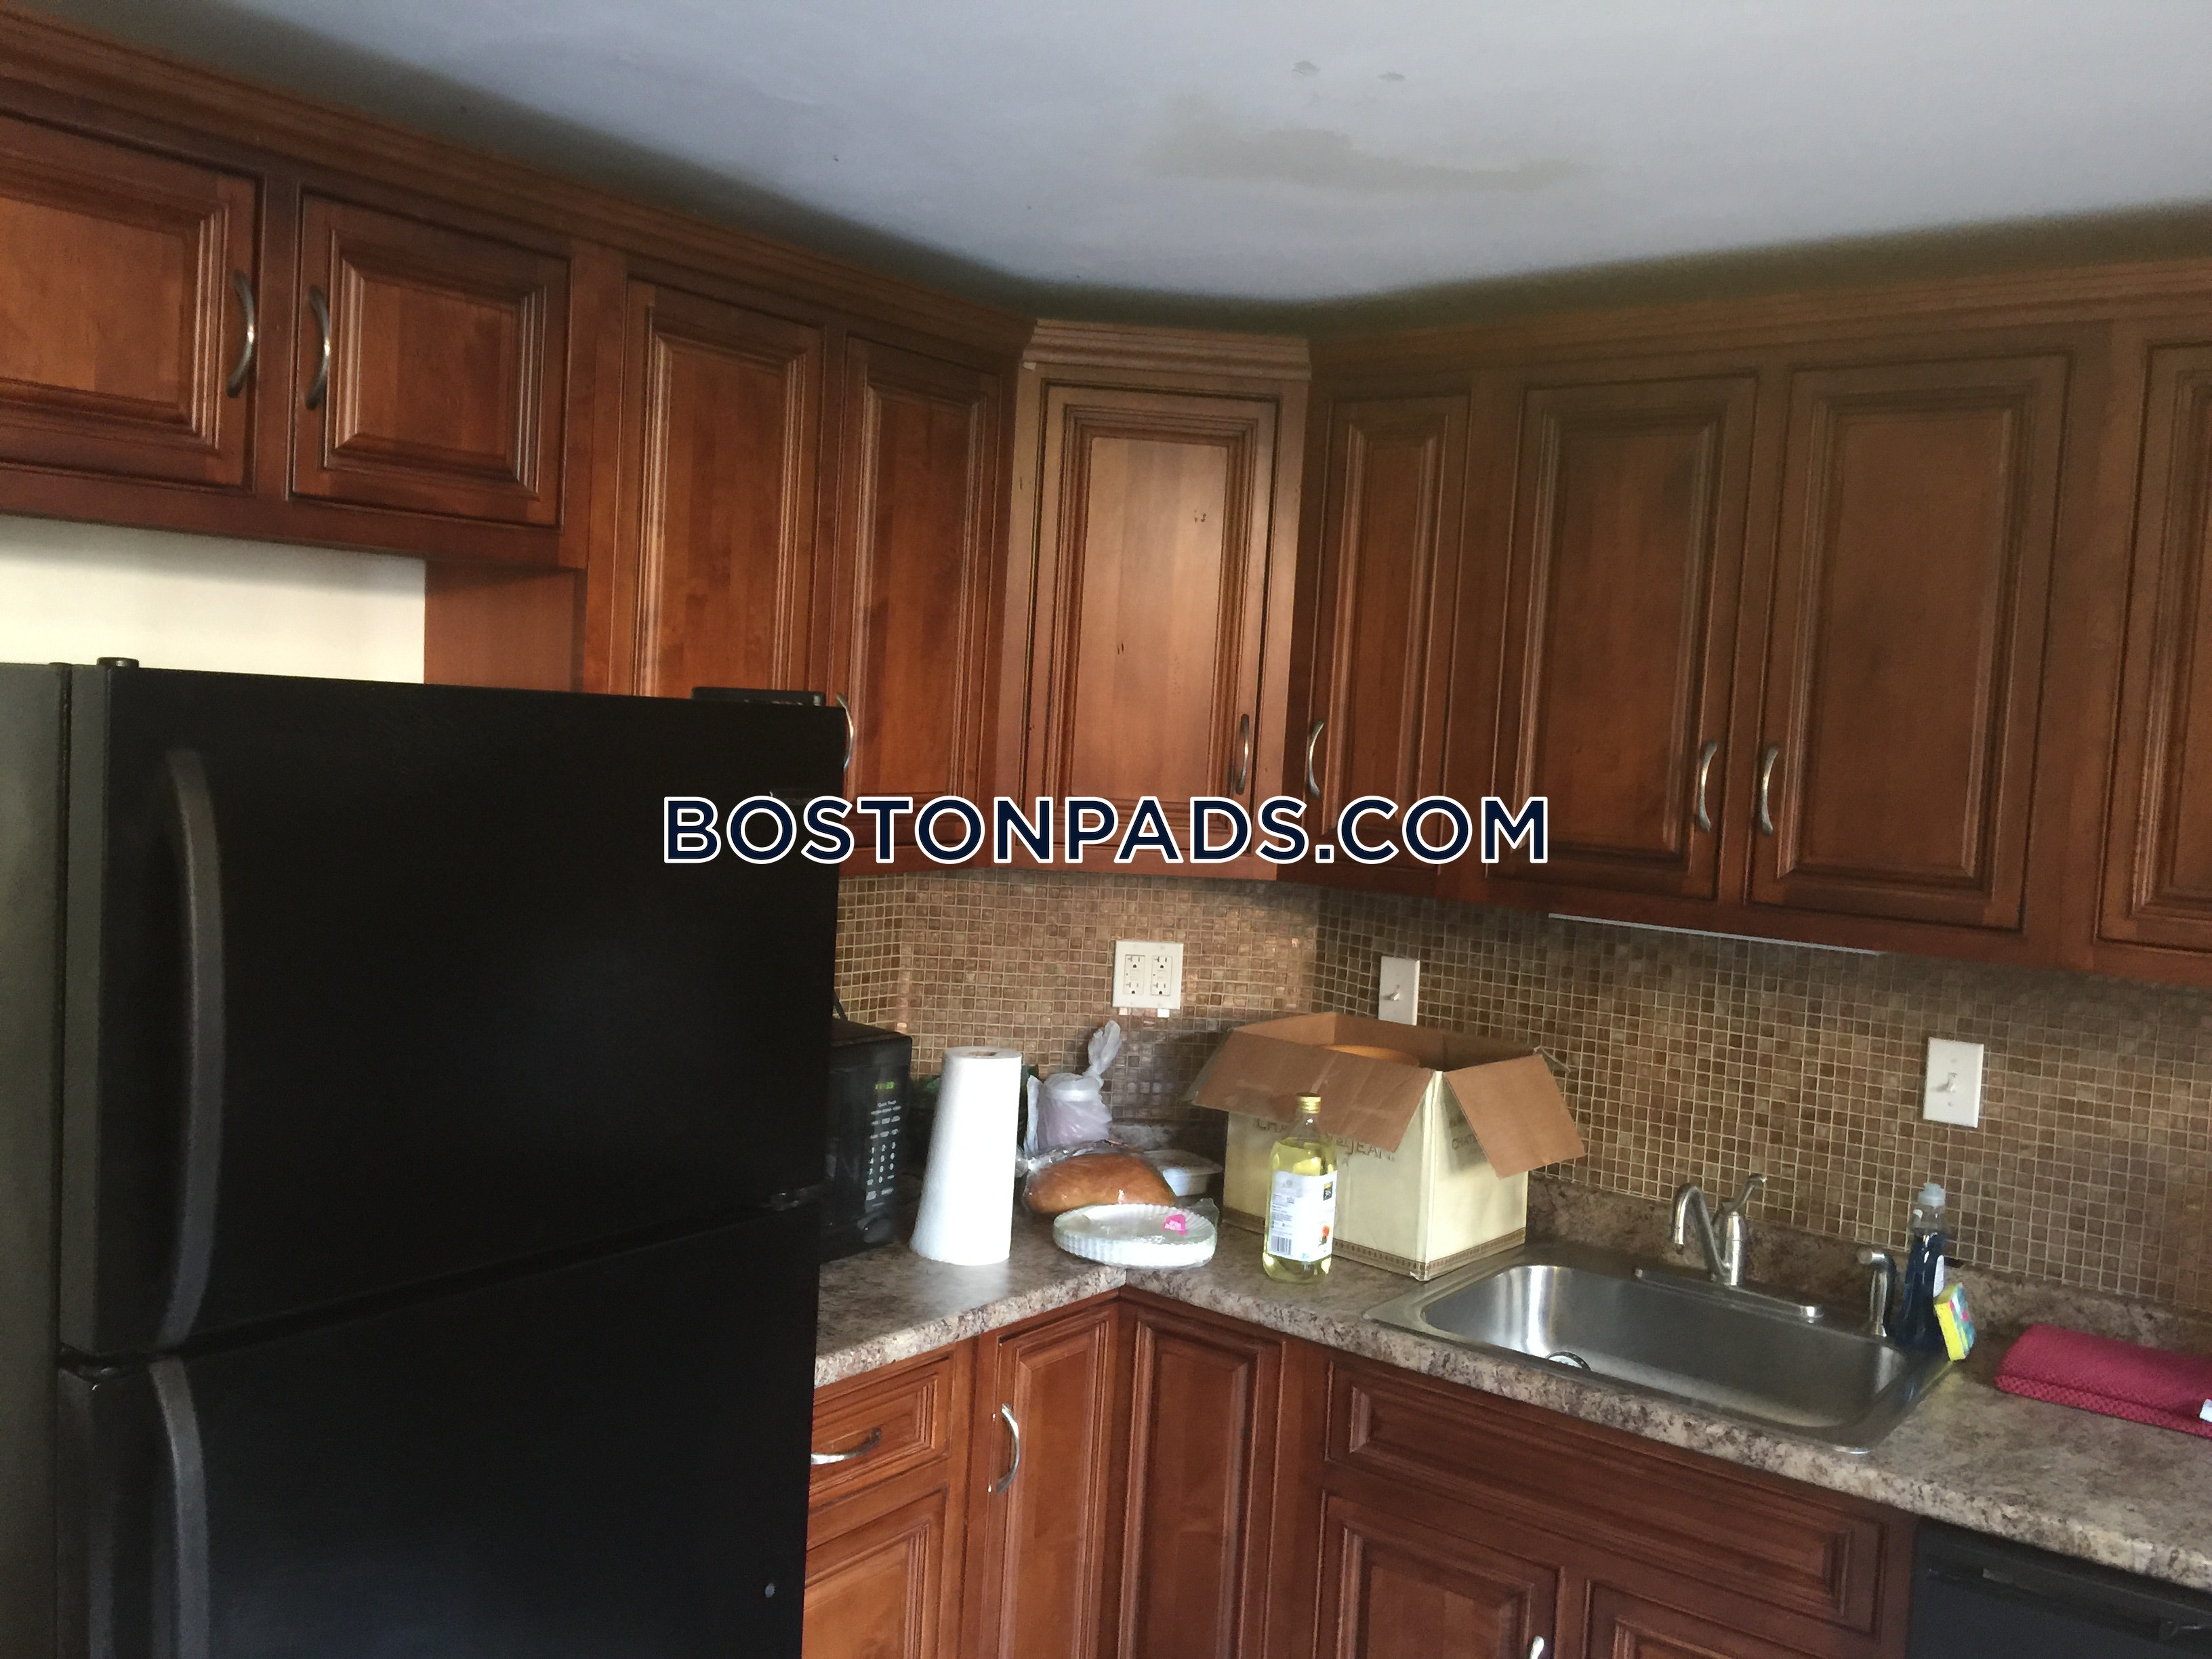 4 Beds 1 Baths - BOSTON - Northeastern/Symphony $1,100